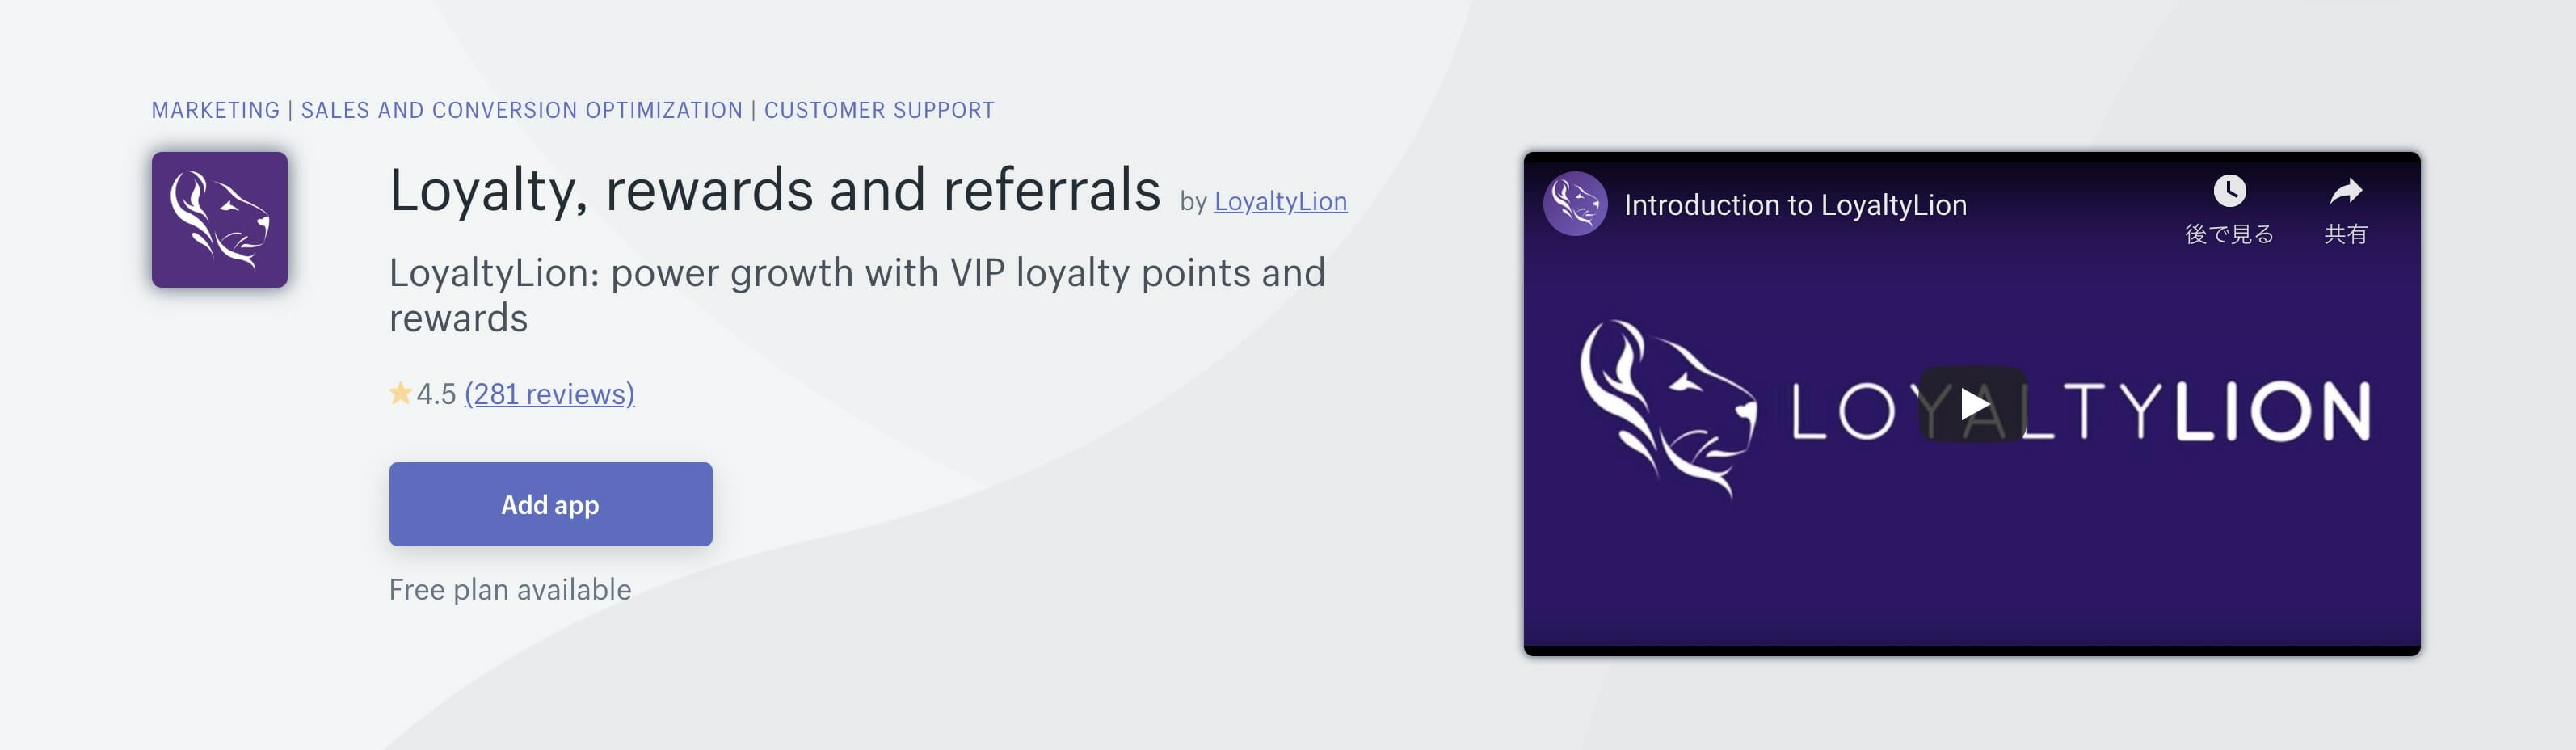 Loyalty_rewards_and_referrals